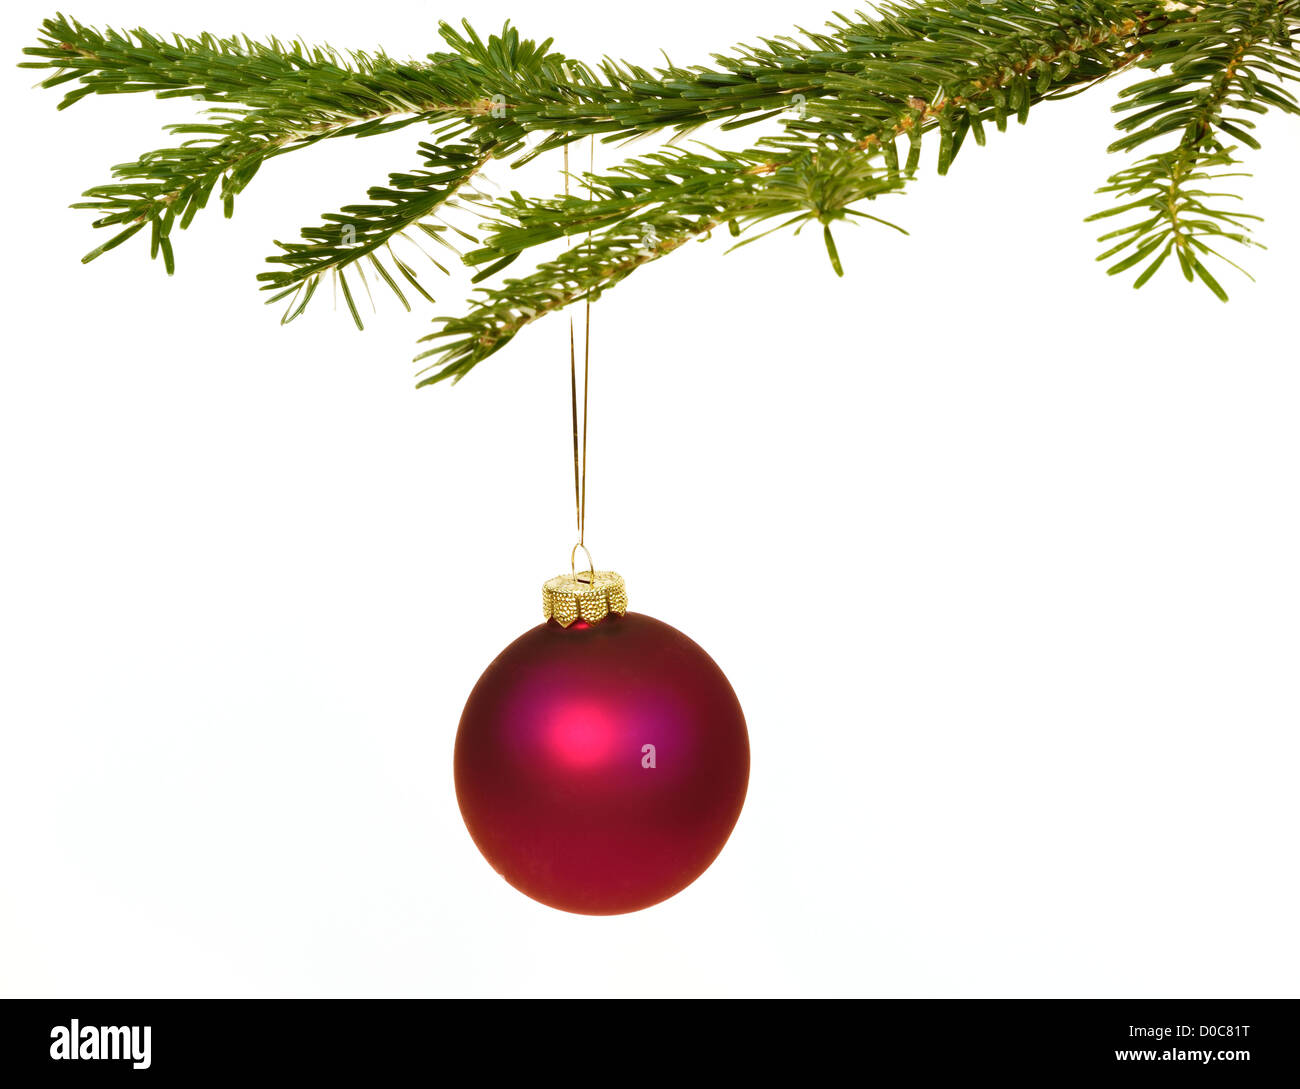 Dark red Christmas decorations hanging from a pine branch - isolated on white background - Stock Image